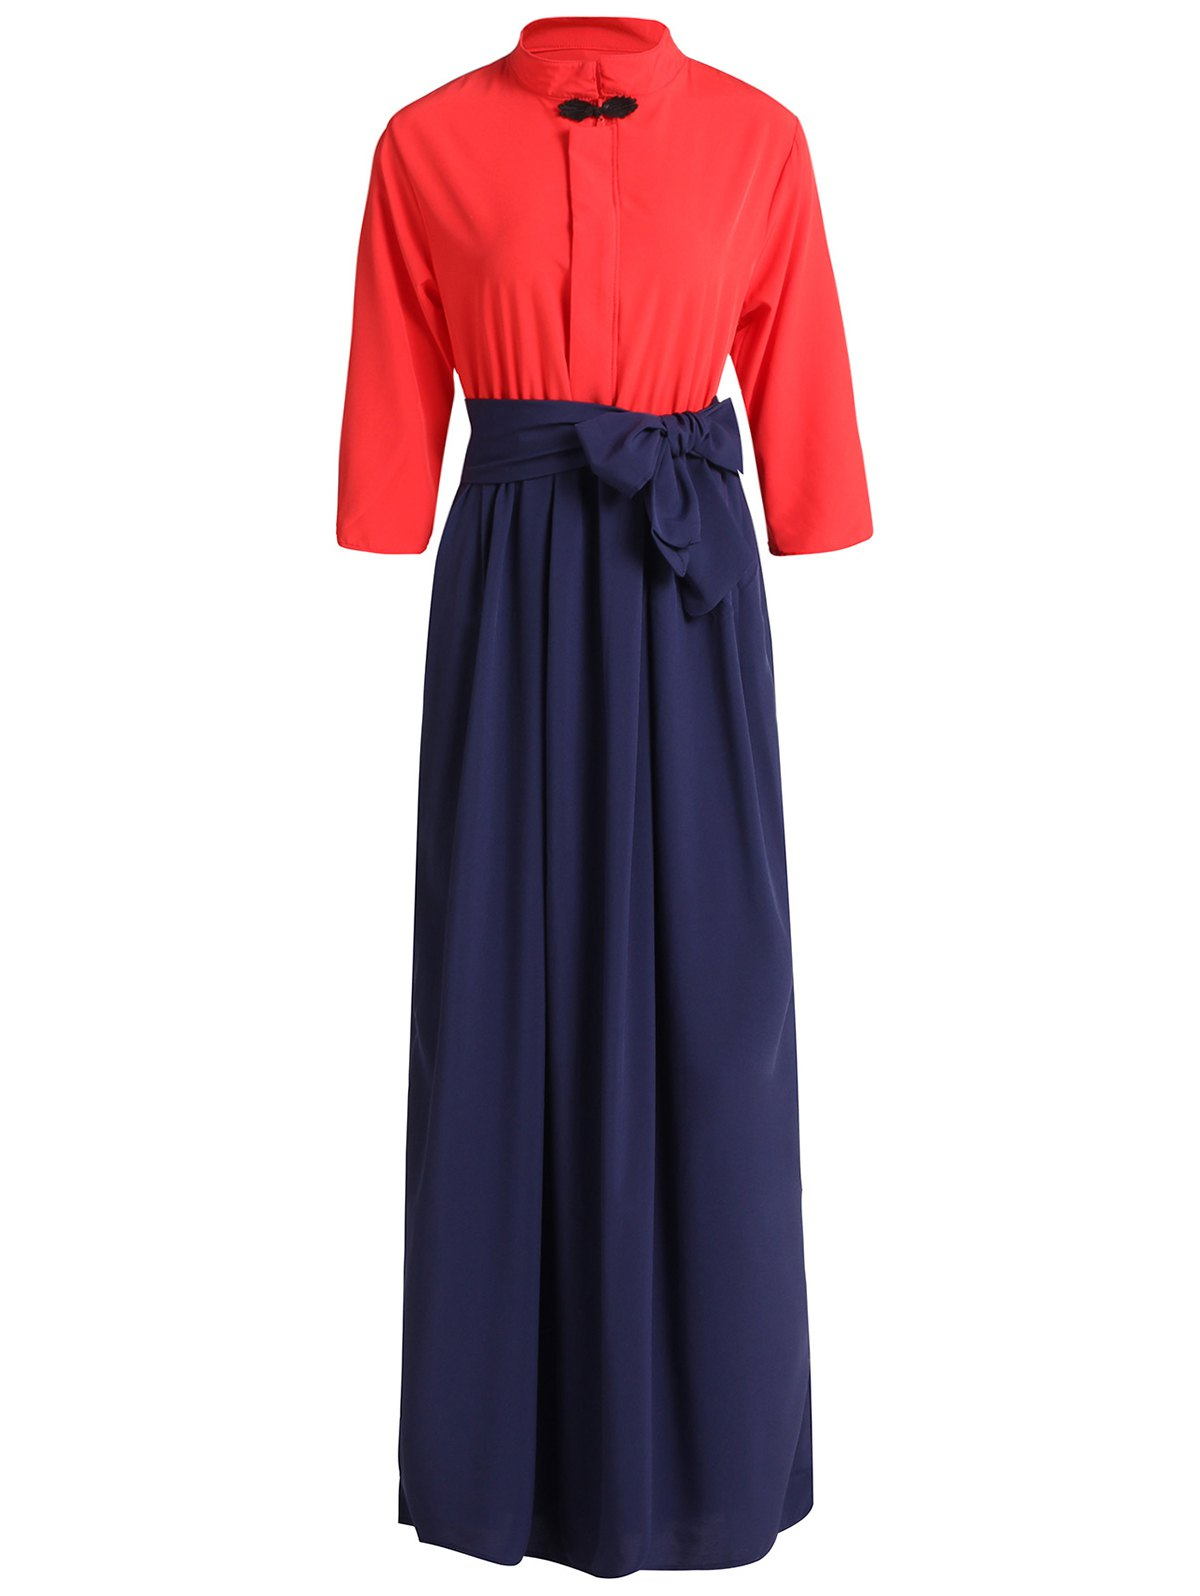 Sweet Bowknot Stand Collar 3/4 Sleeve Dress For Women - RED XL